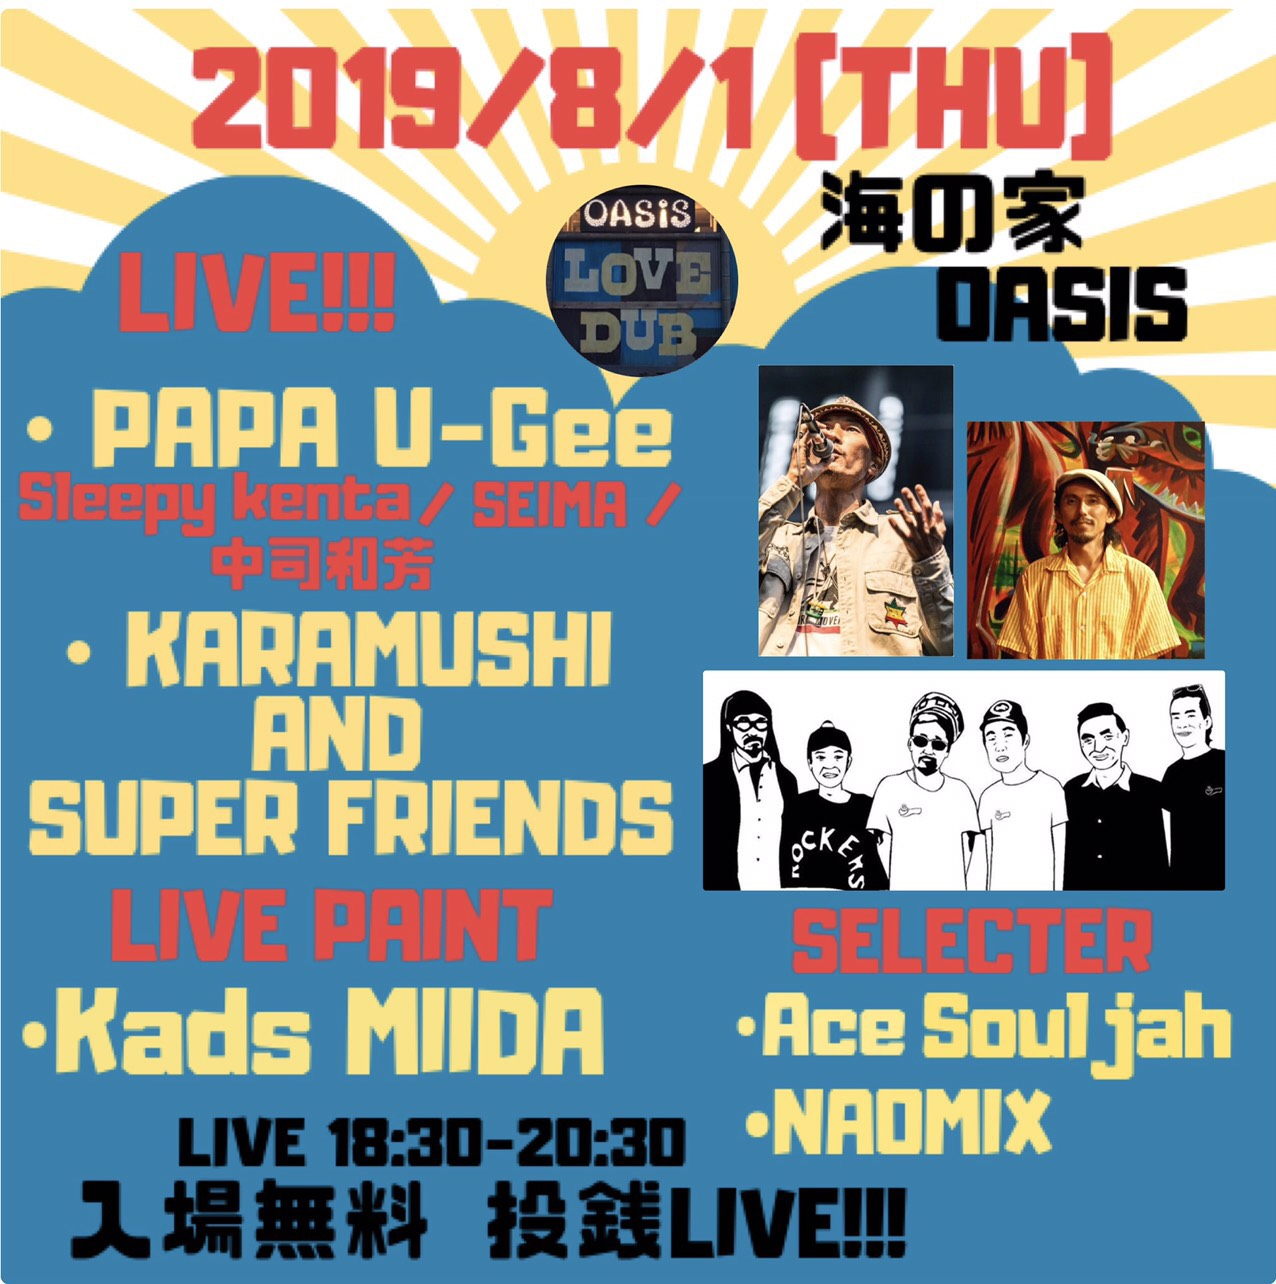 PAPA U-Gee, KARAMUSHI & SUPER FRIENDS